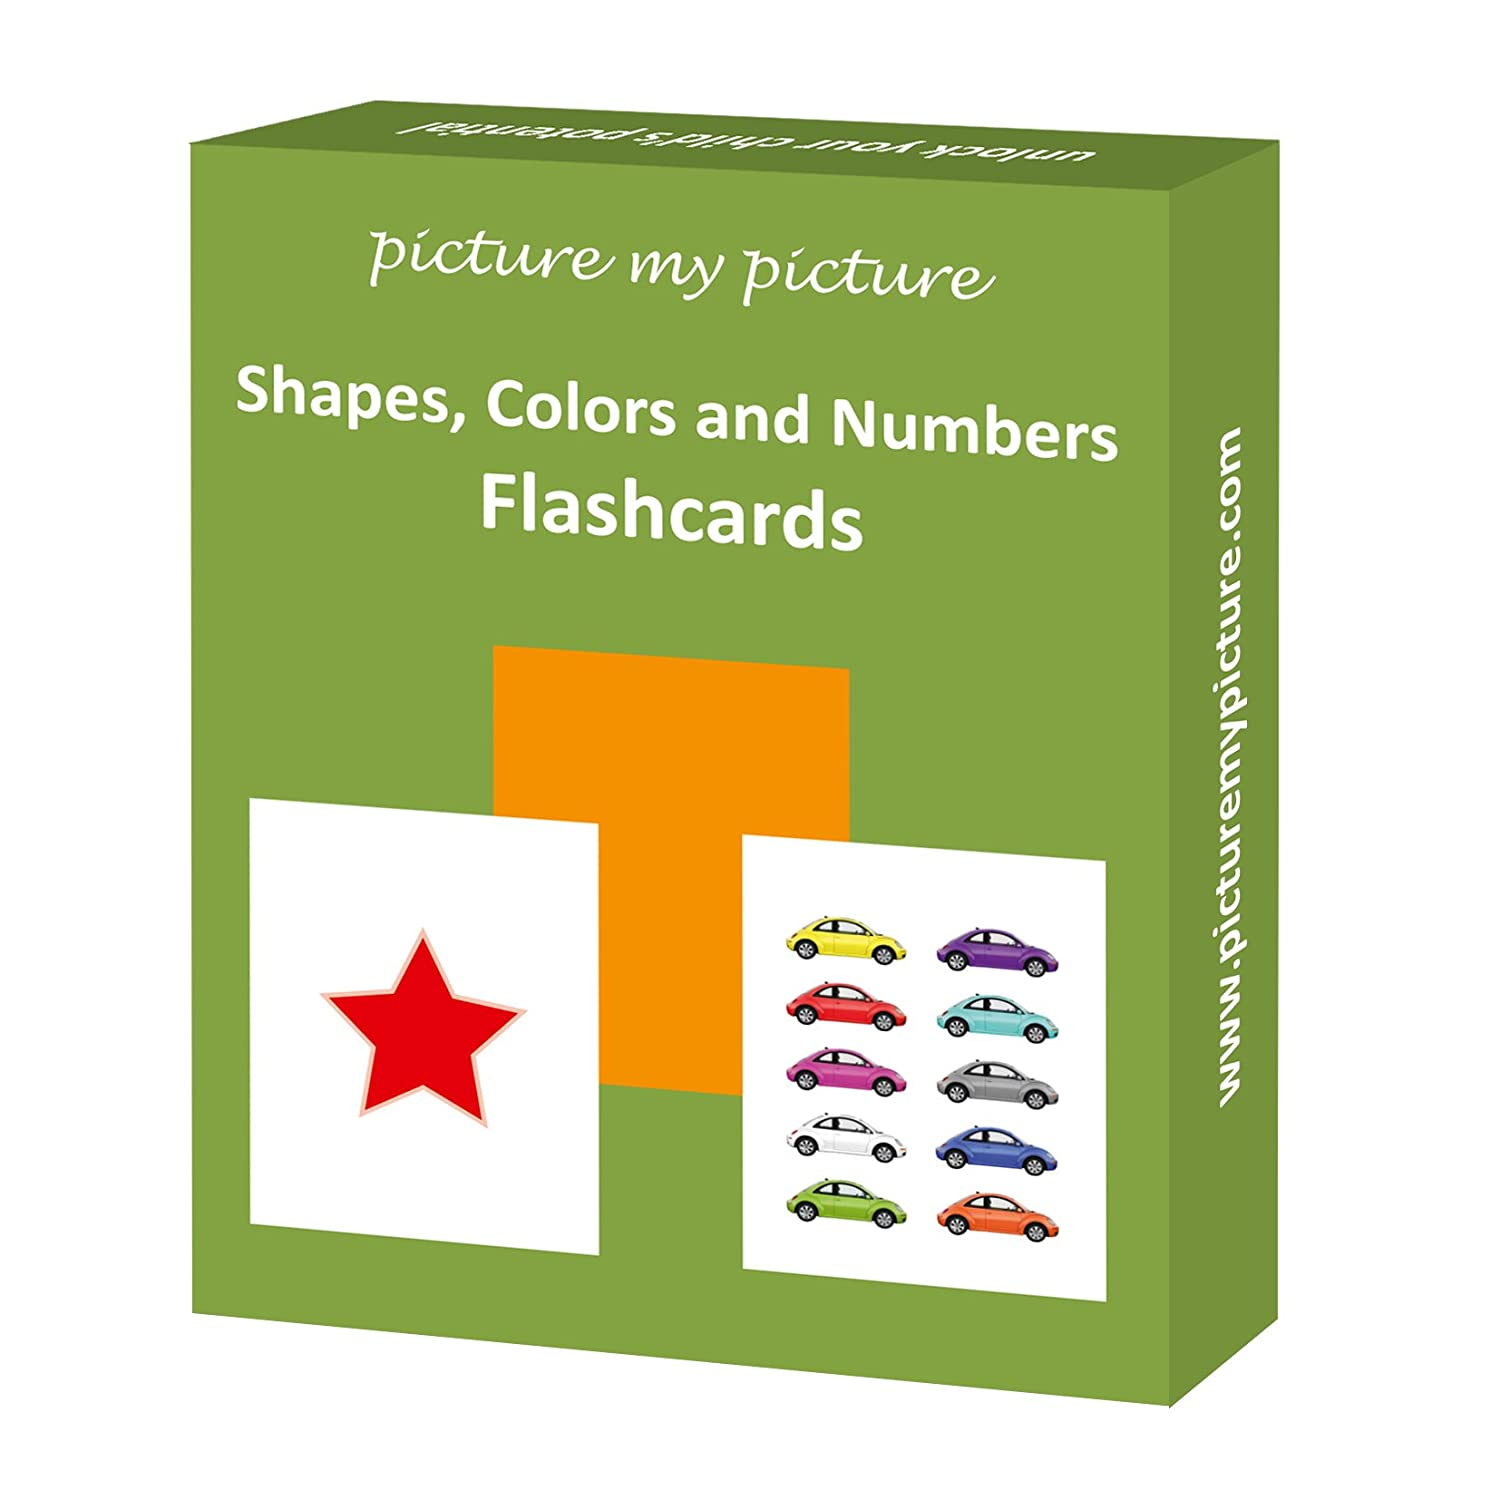 Amazon.com: Shapes Colors and Numbers: 40 Flash Cards: Toys & Games